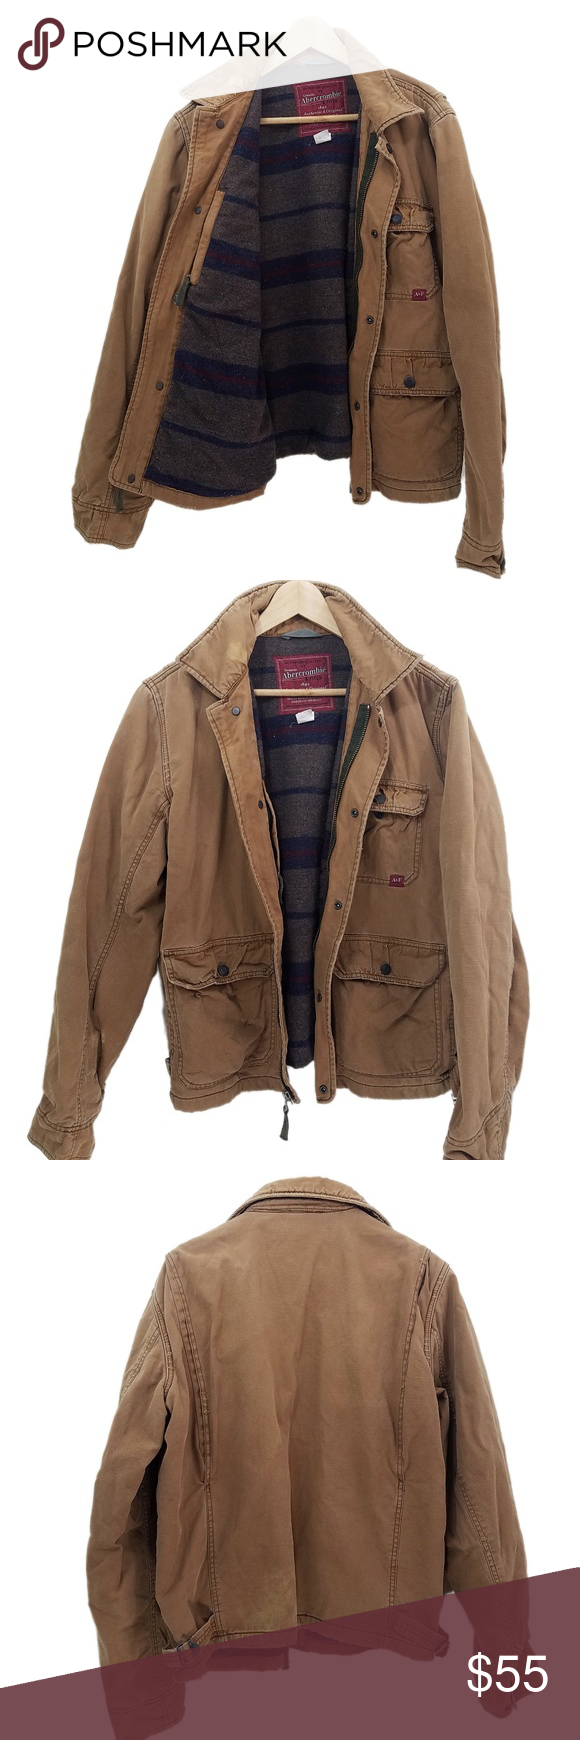 Abercrombie Fitch Distressed Mens Winter Jacket Winter Jacket Men Winter Jackets Mens Fashion Rugged [ 1740 x 580 Pixel ]